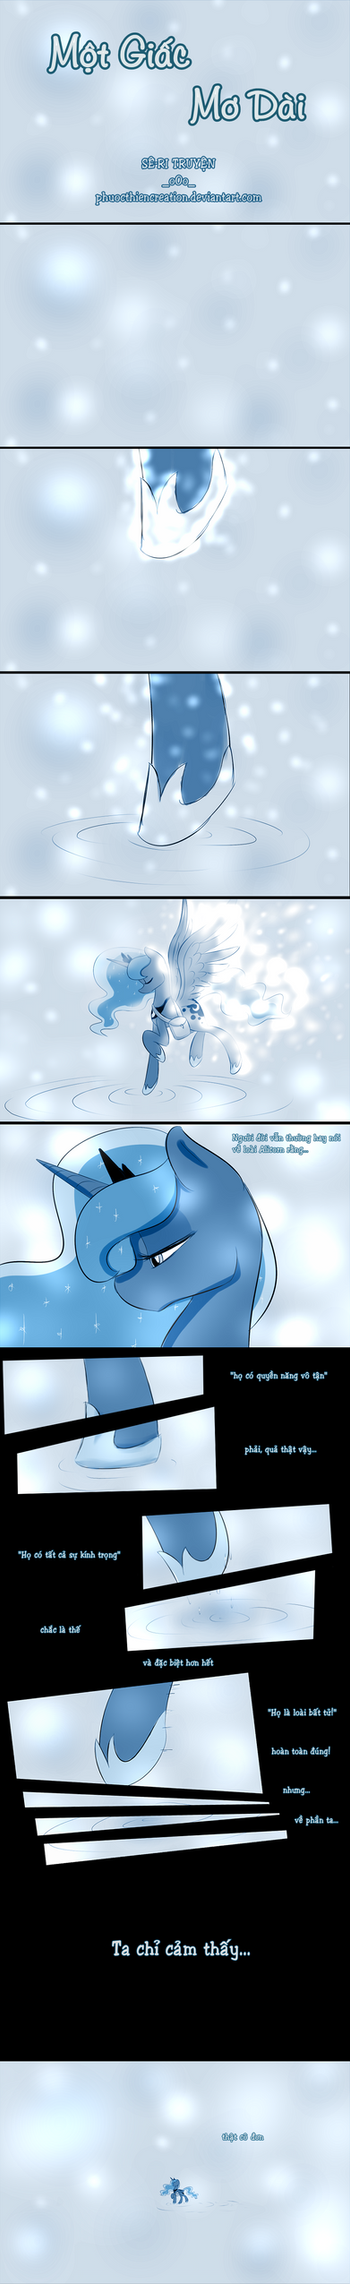 Prolonged Dream [Vie] - Page 1 by PhuocThienCreation